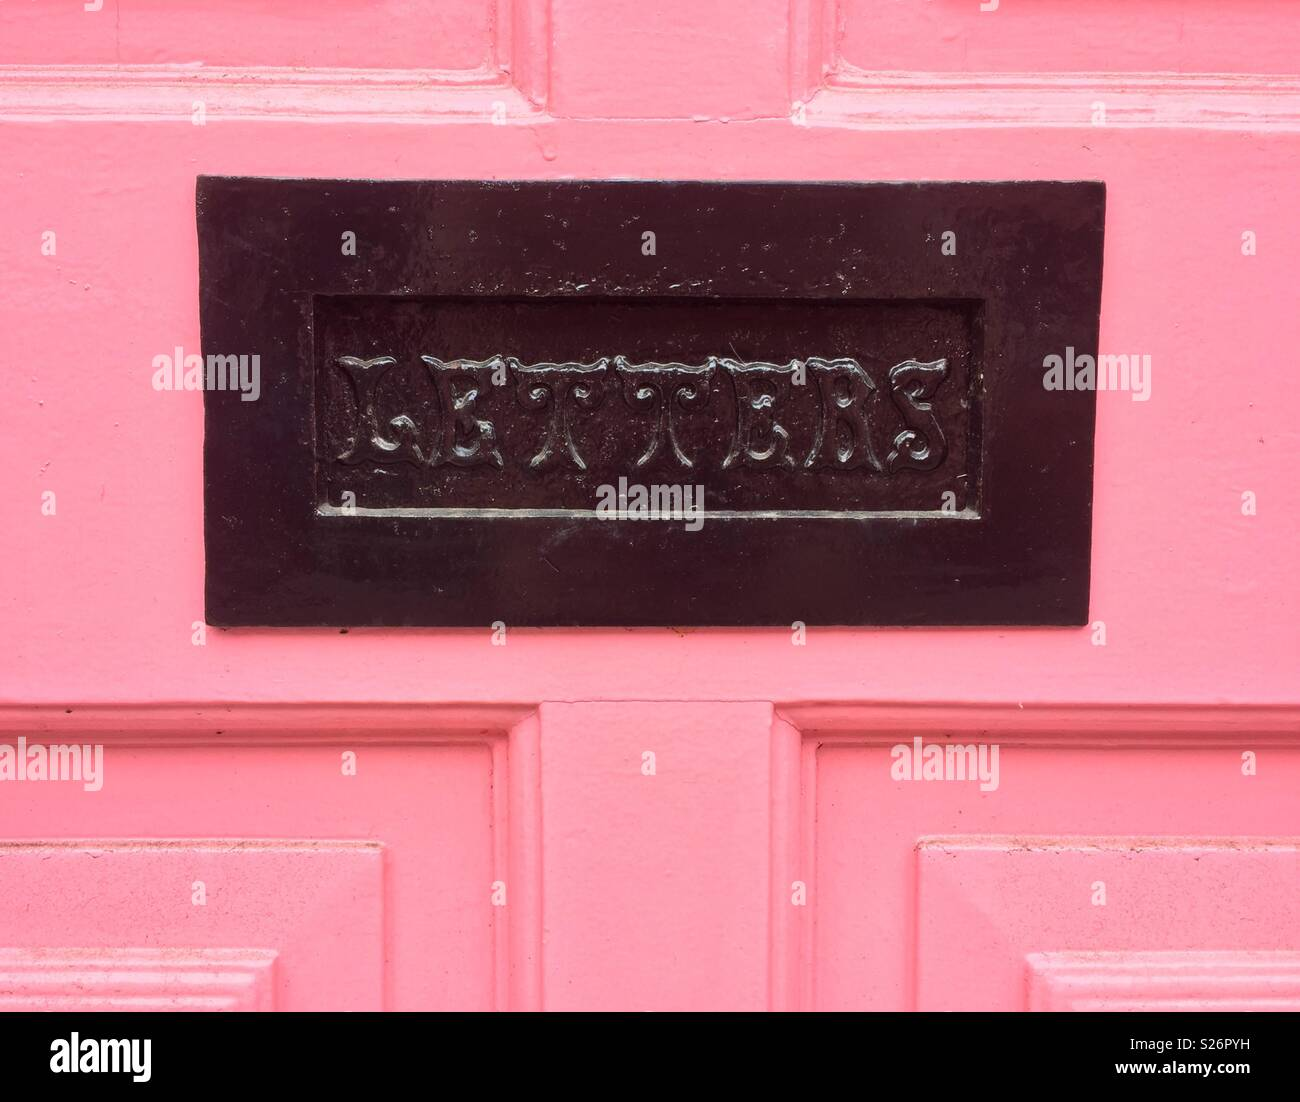 Black letterbox with letters written on, on a pink door. - Stock Image